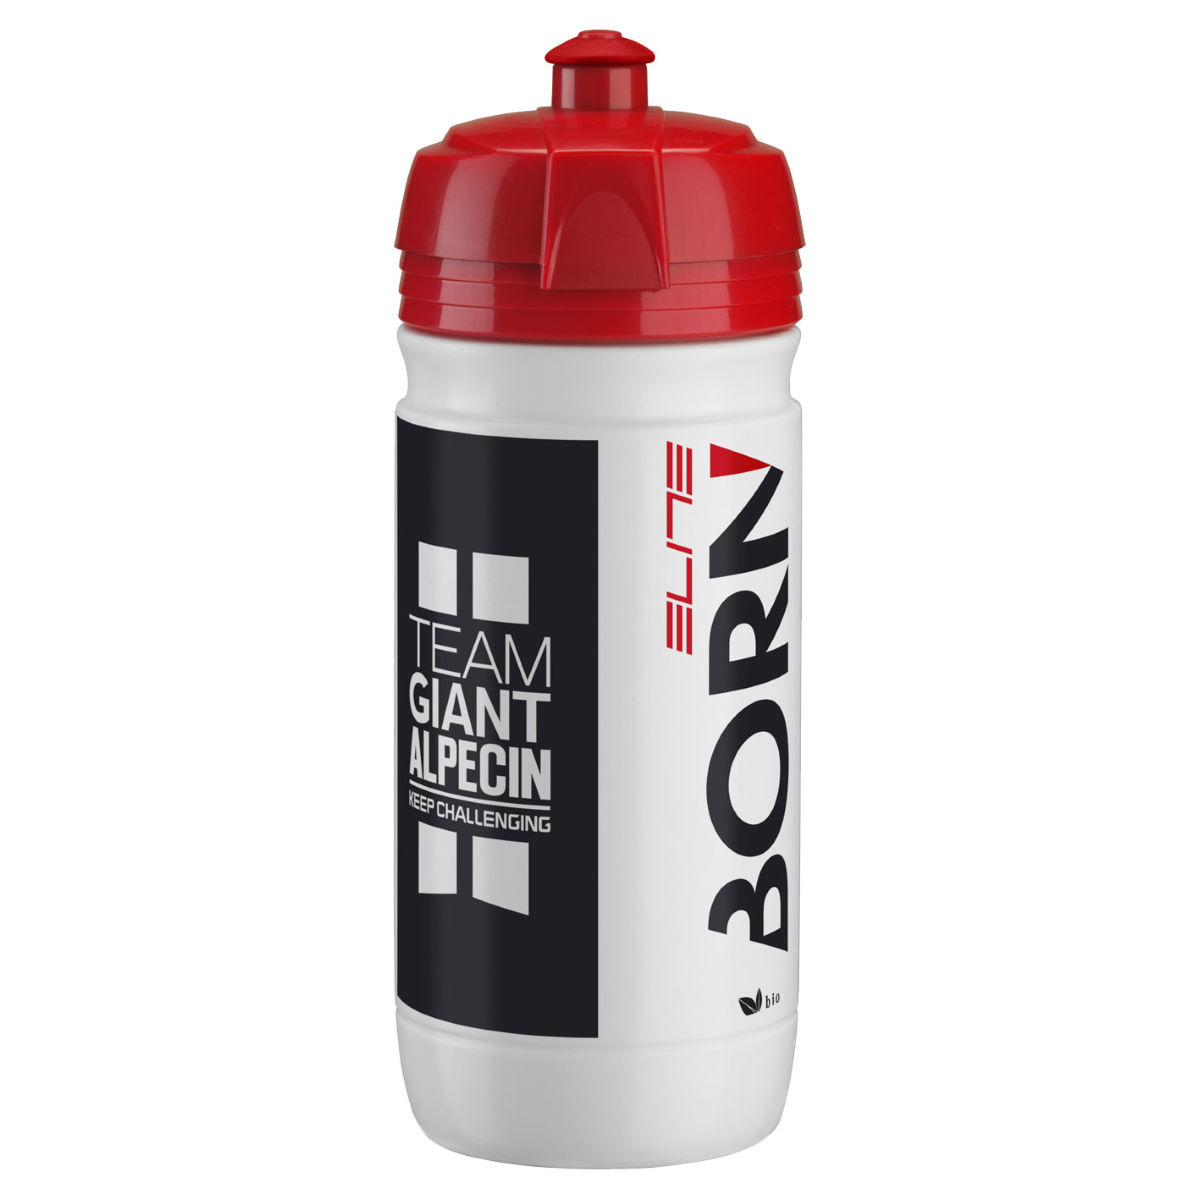 Bidon Elite Corsa Team (550 ml, 2014) - 550ml GIANT-ALPECIN Bidons